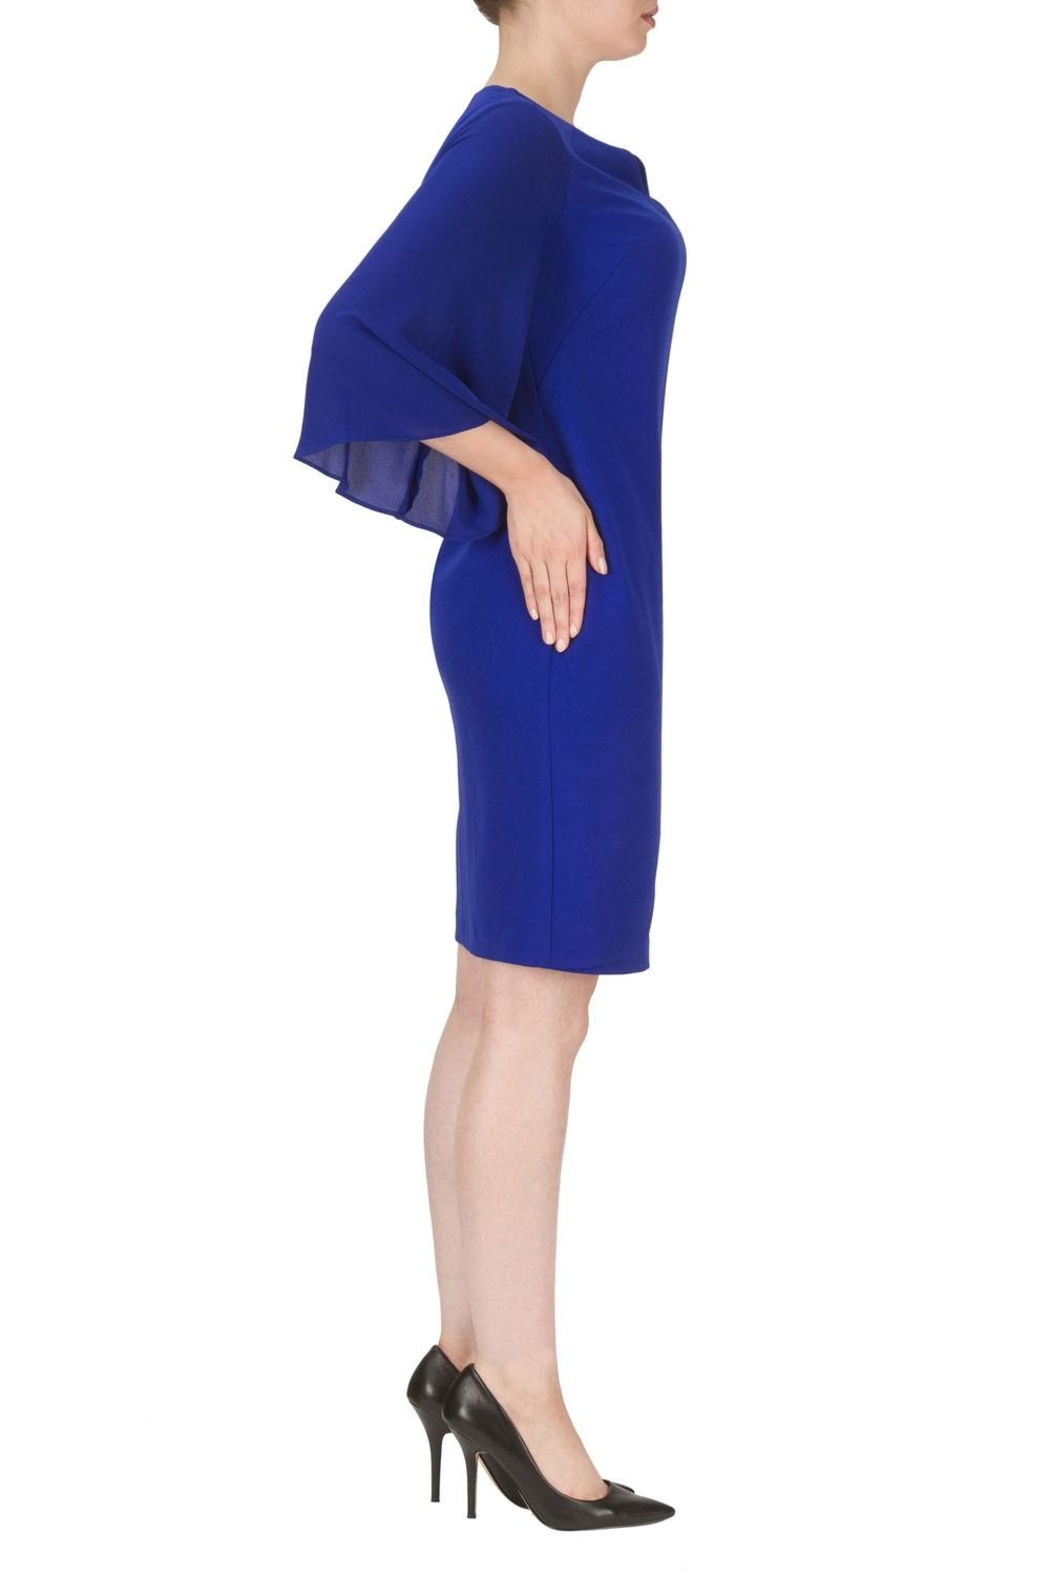 Joseph Ribkoff Blue Knee Length Dress - Front Full Image